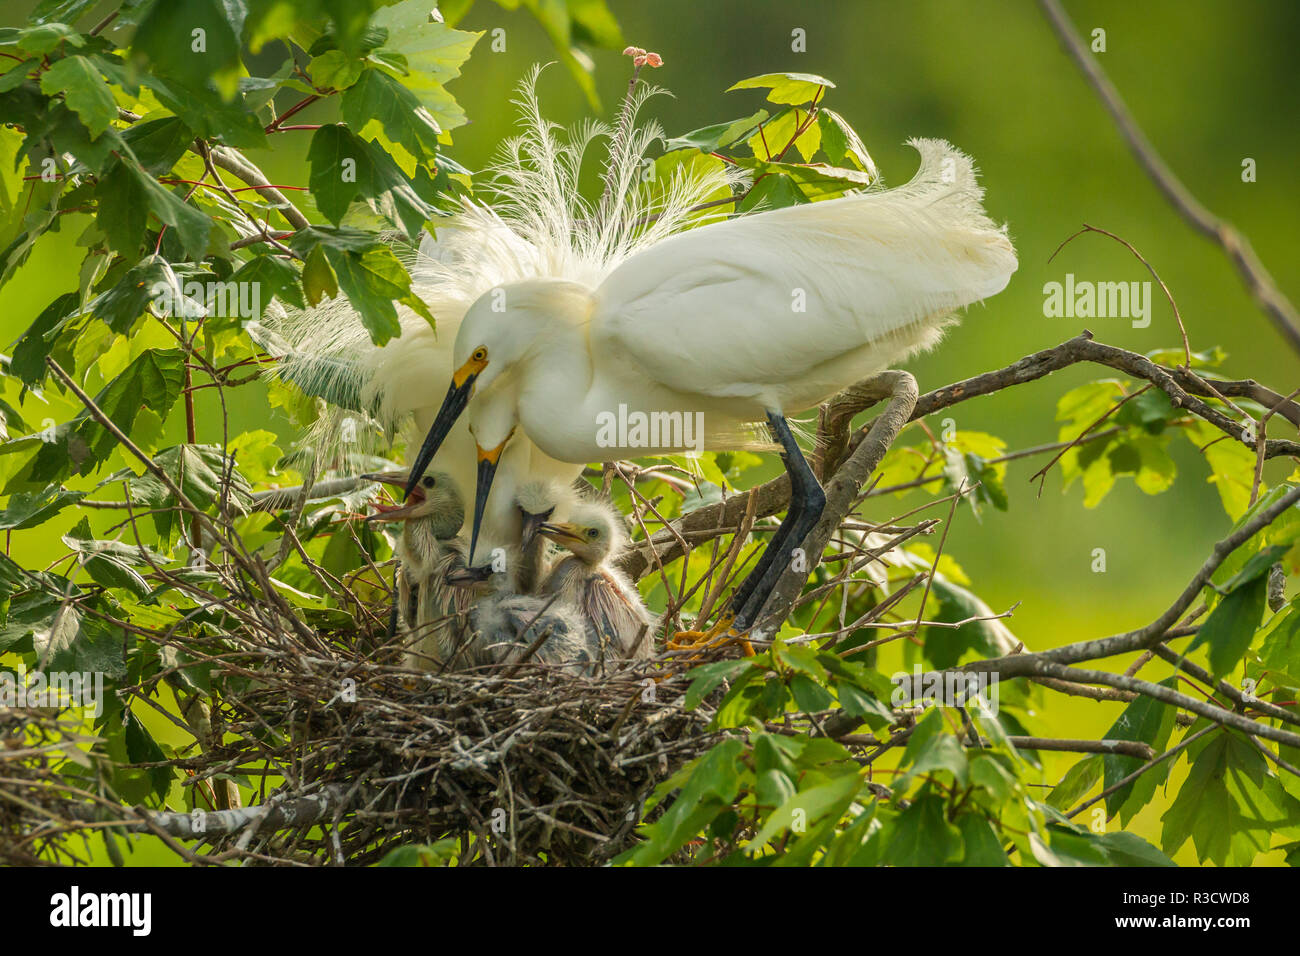 USA, Louisiana, Jefferson Island. Snowy egret pair at nest with chicks. - Stock Image